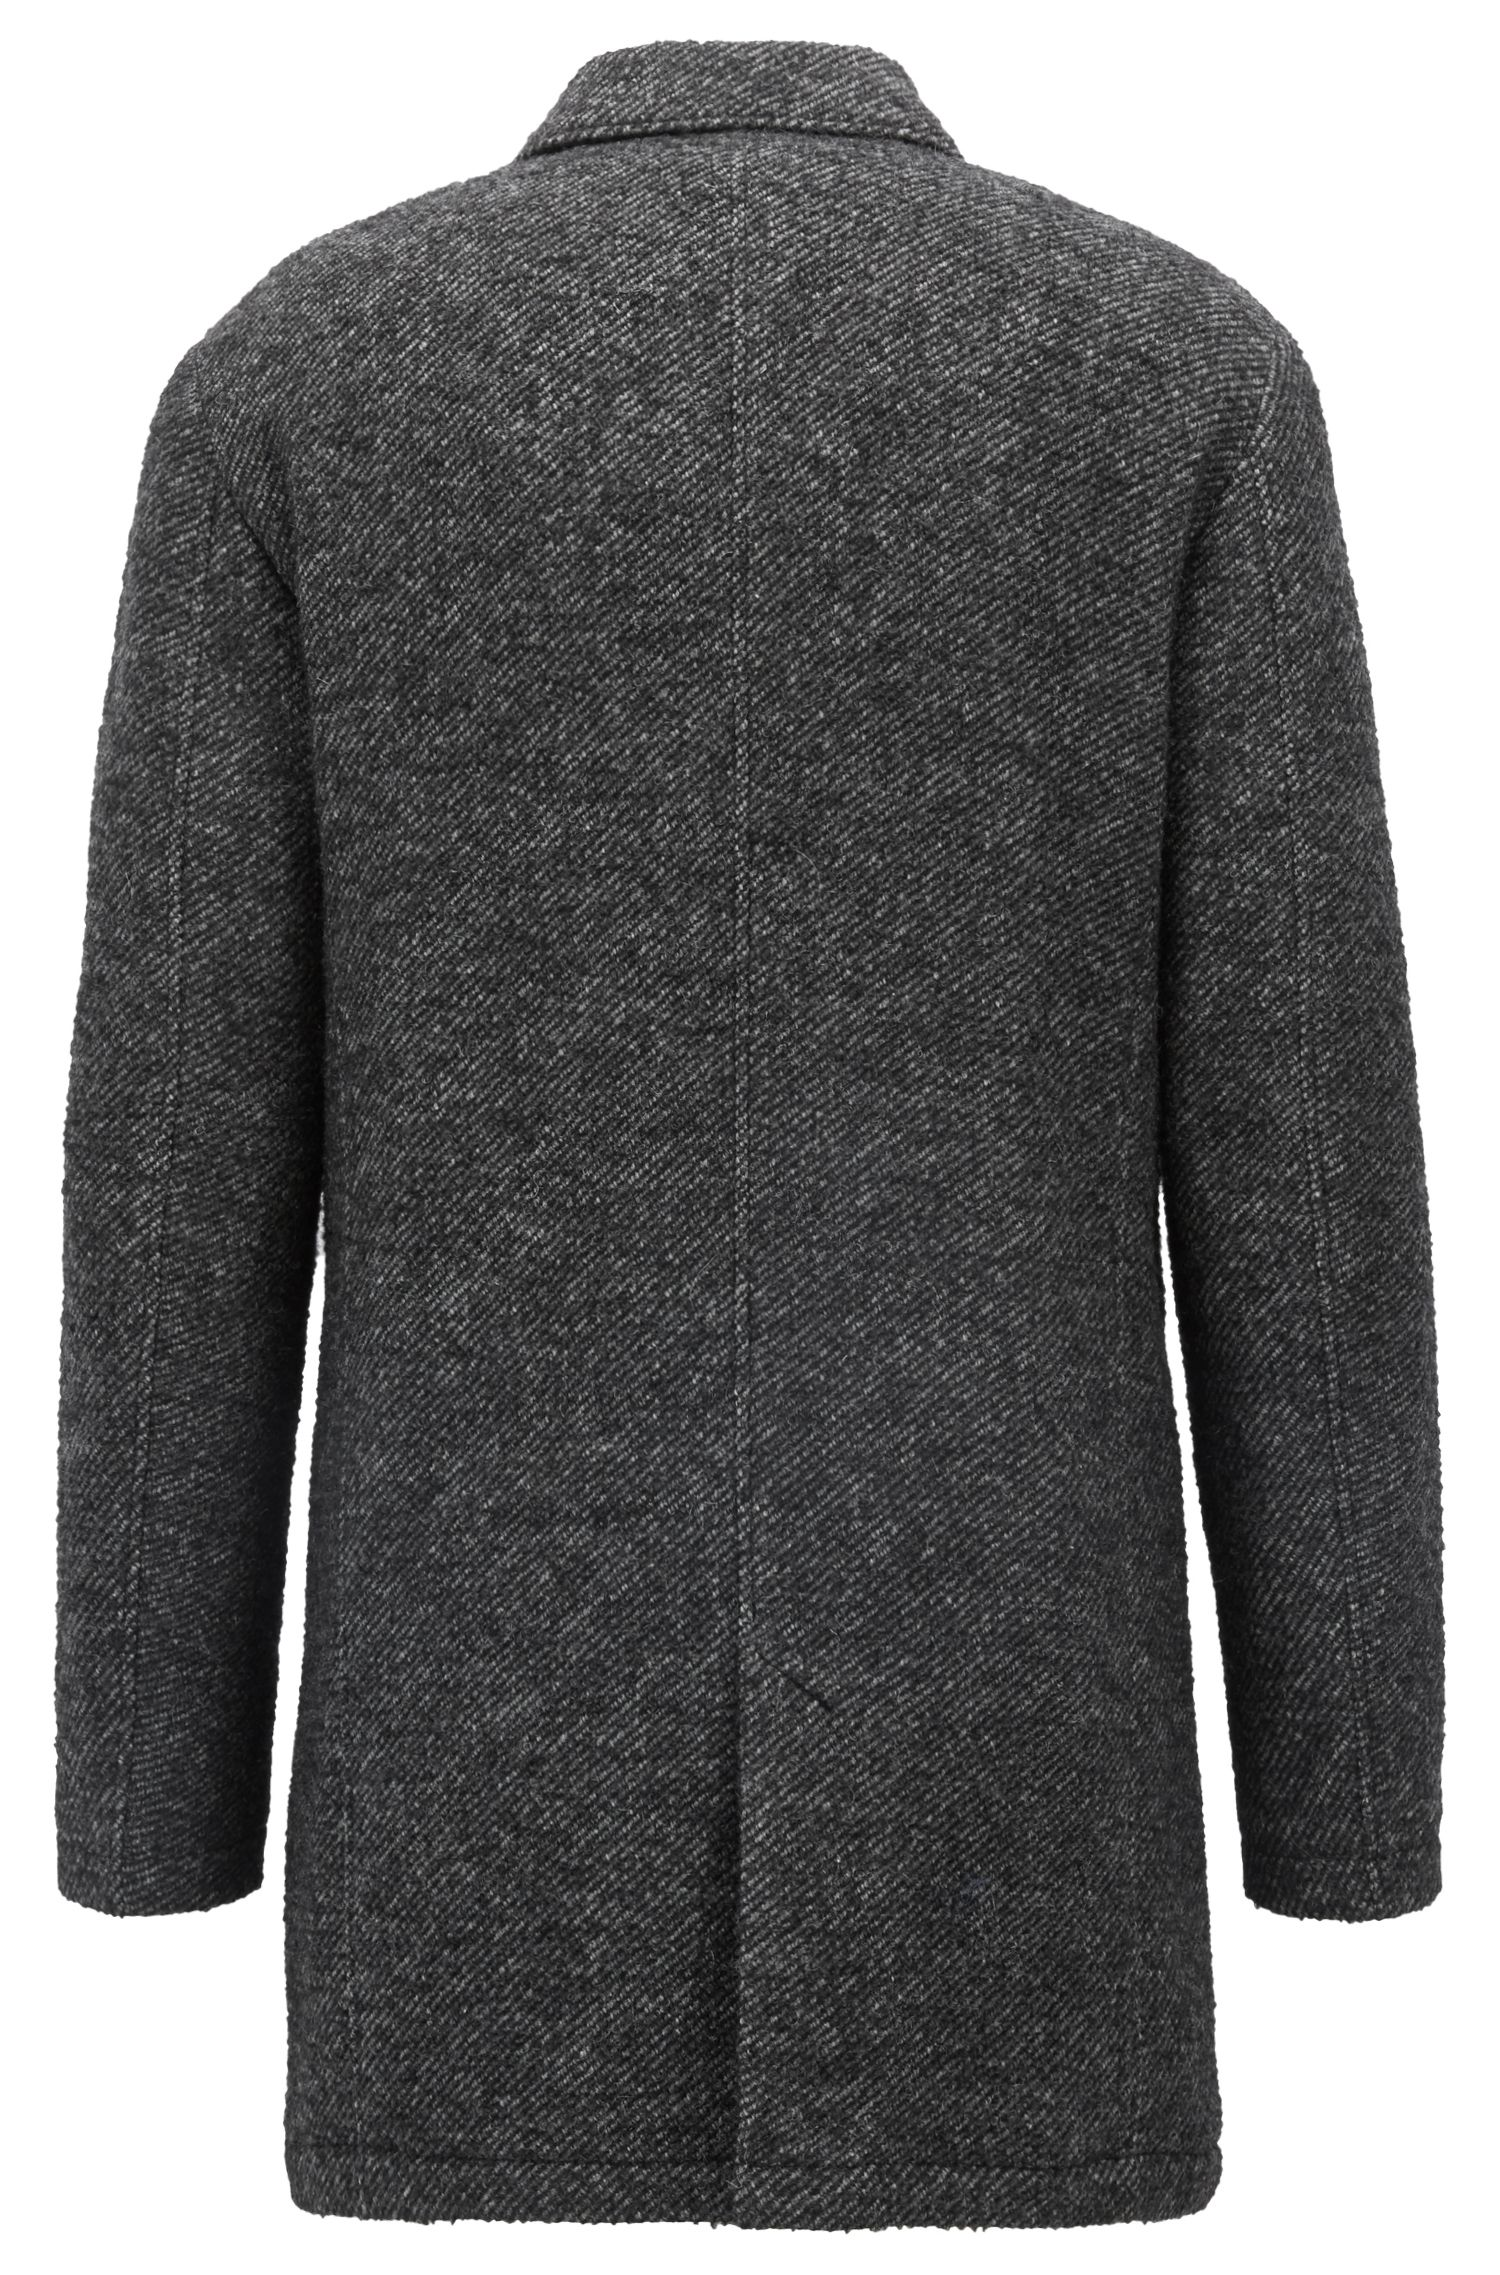 Manteau court Slim Fit en twill bicolore rembourré, Noir